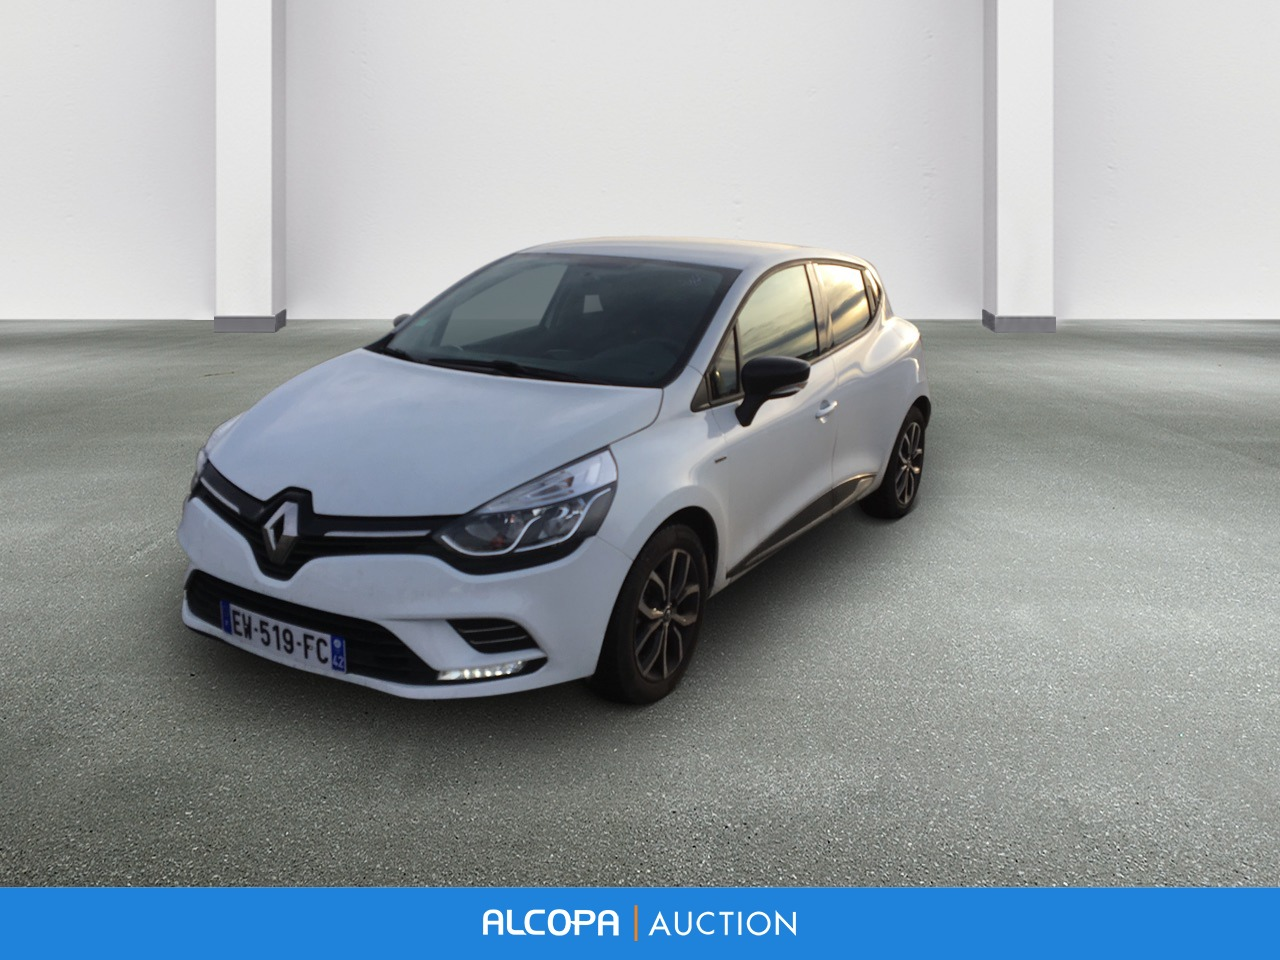 renault clio iv clio dci 75 energy limited alcopa auction. Black Bedroom Furniture Sets. Home Design Ideas